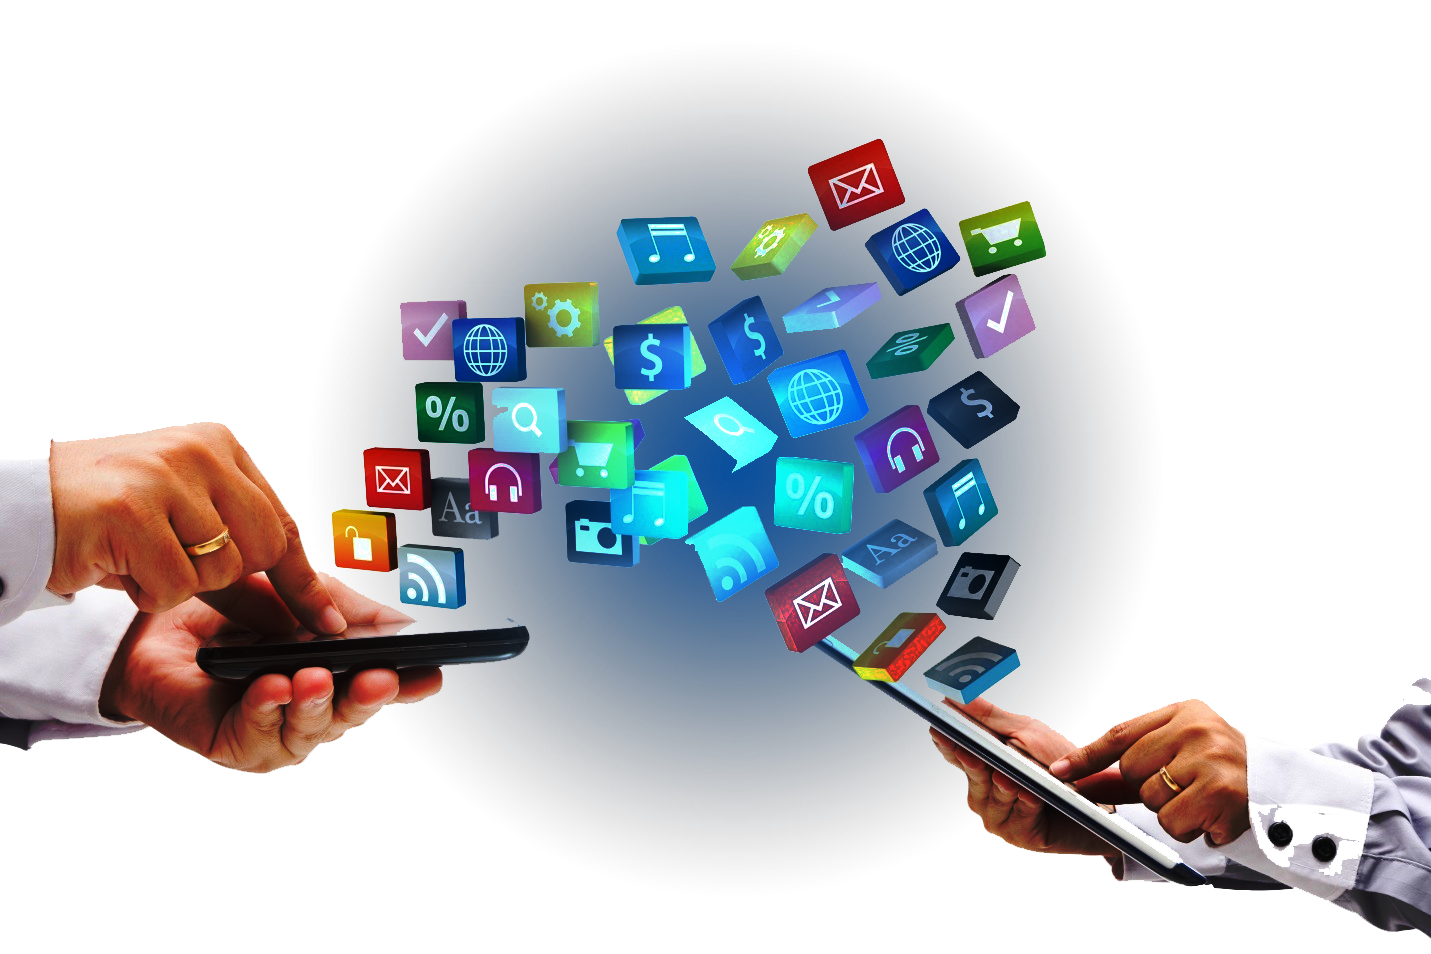 Mobile Marketing apps